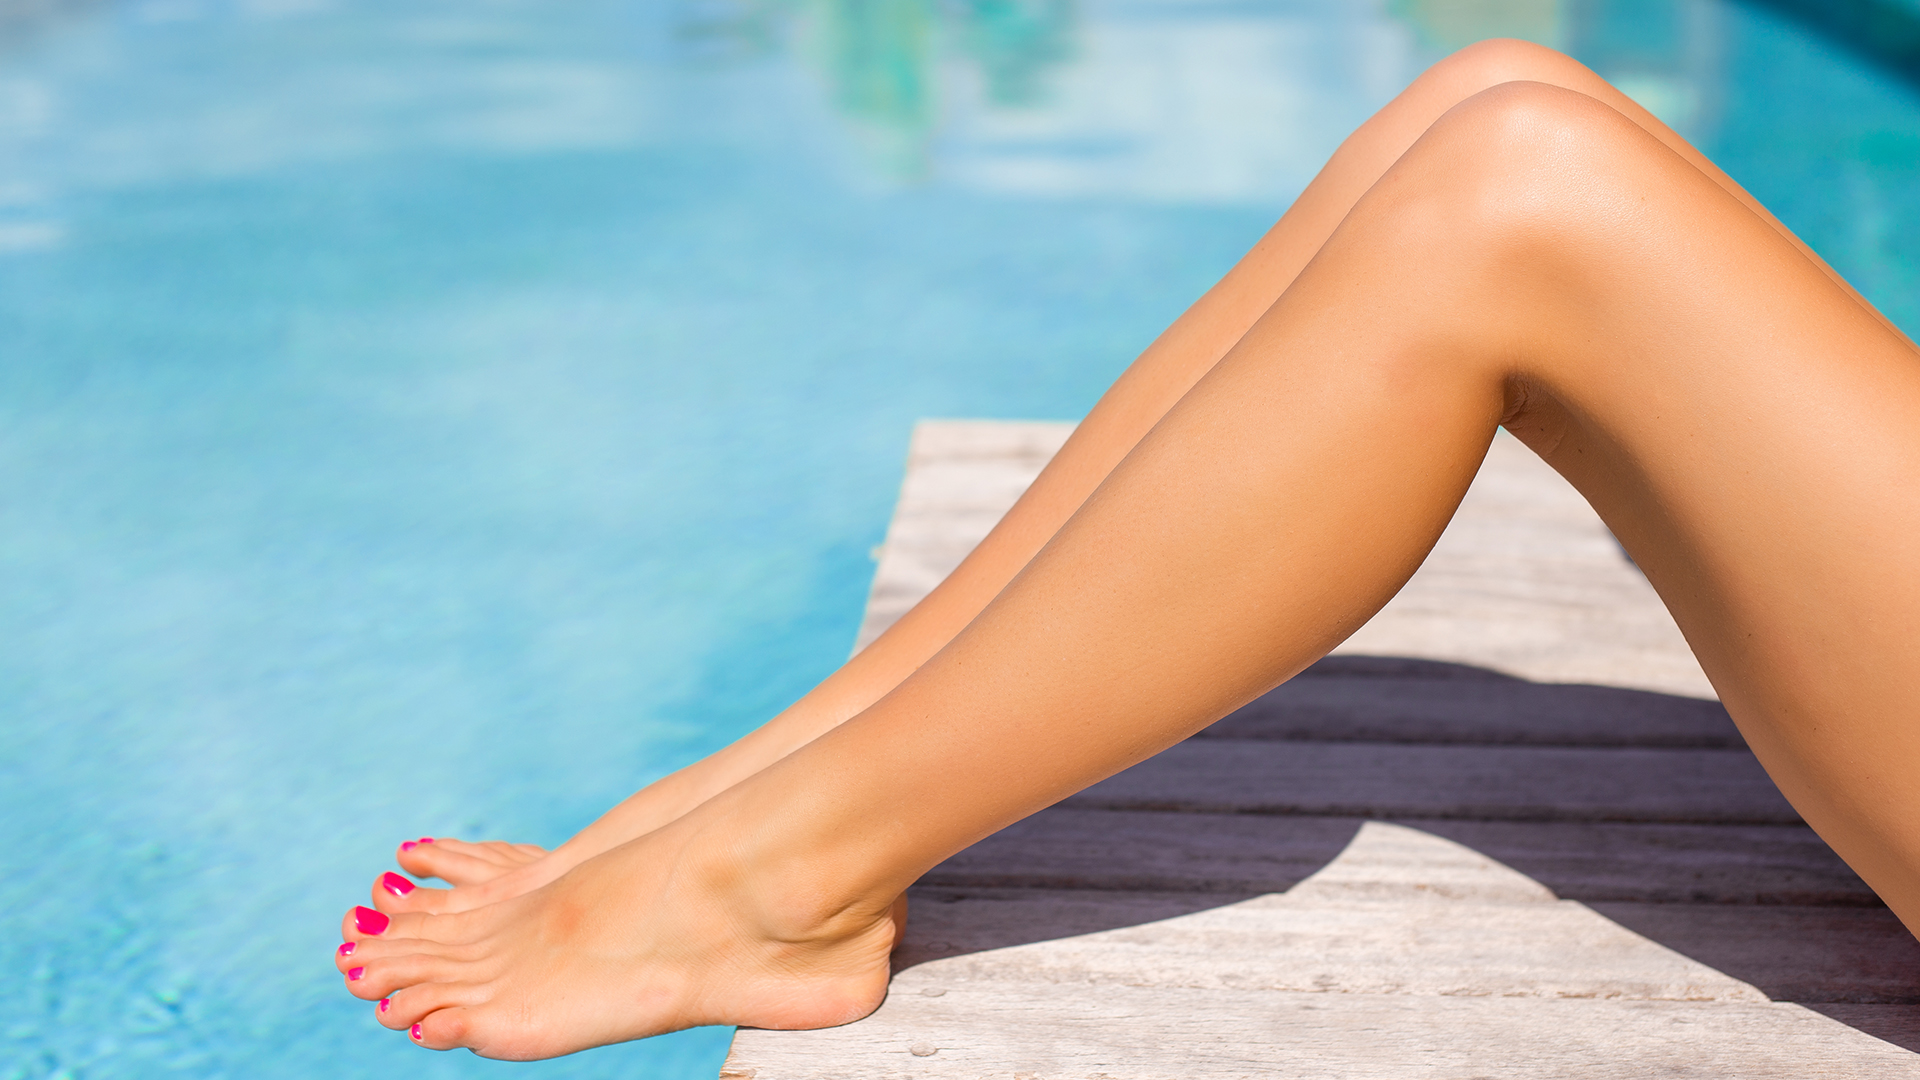 Best Drugstore Beauty Buys For Smooth Legs This Summer